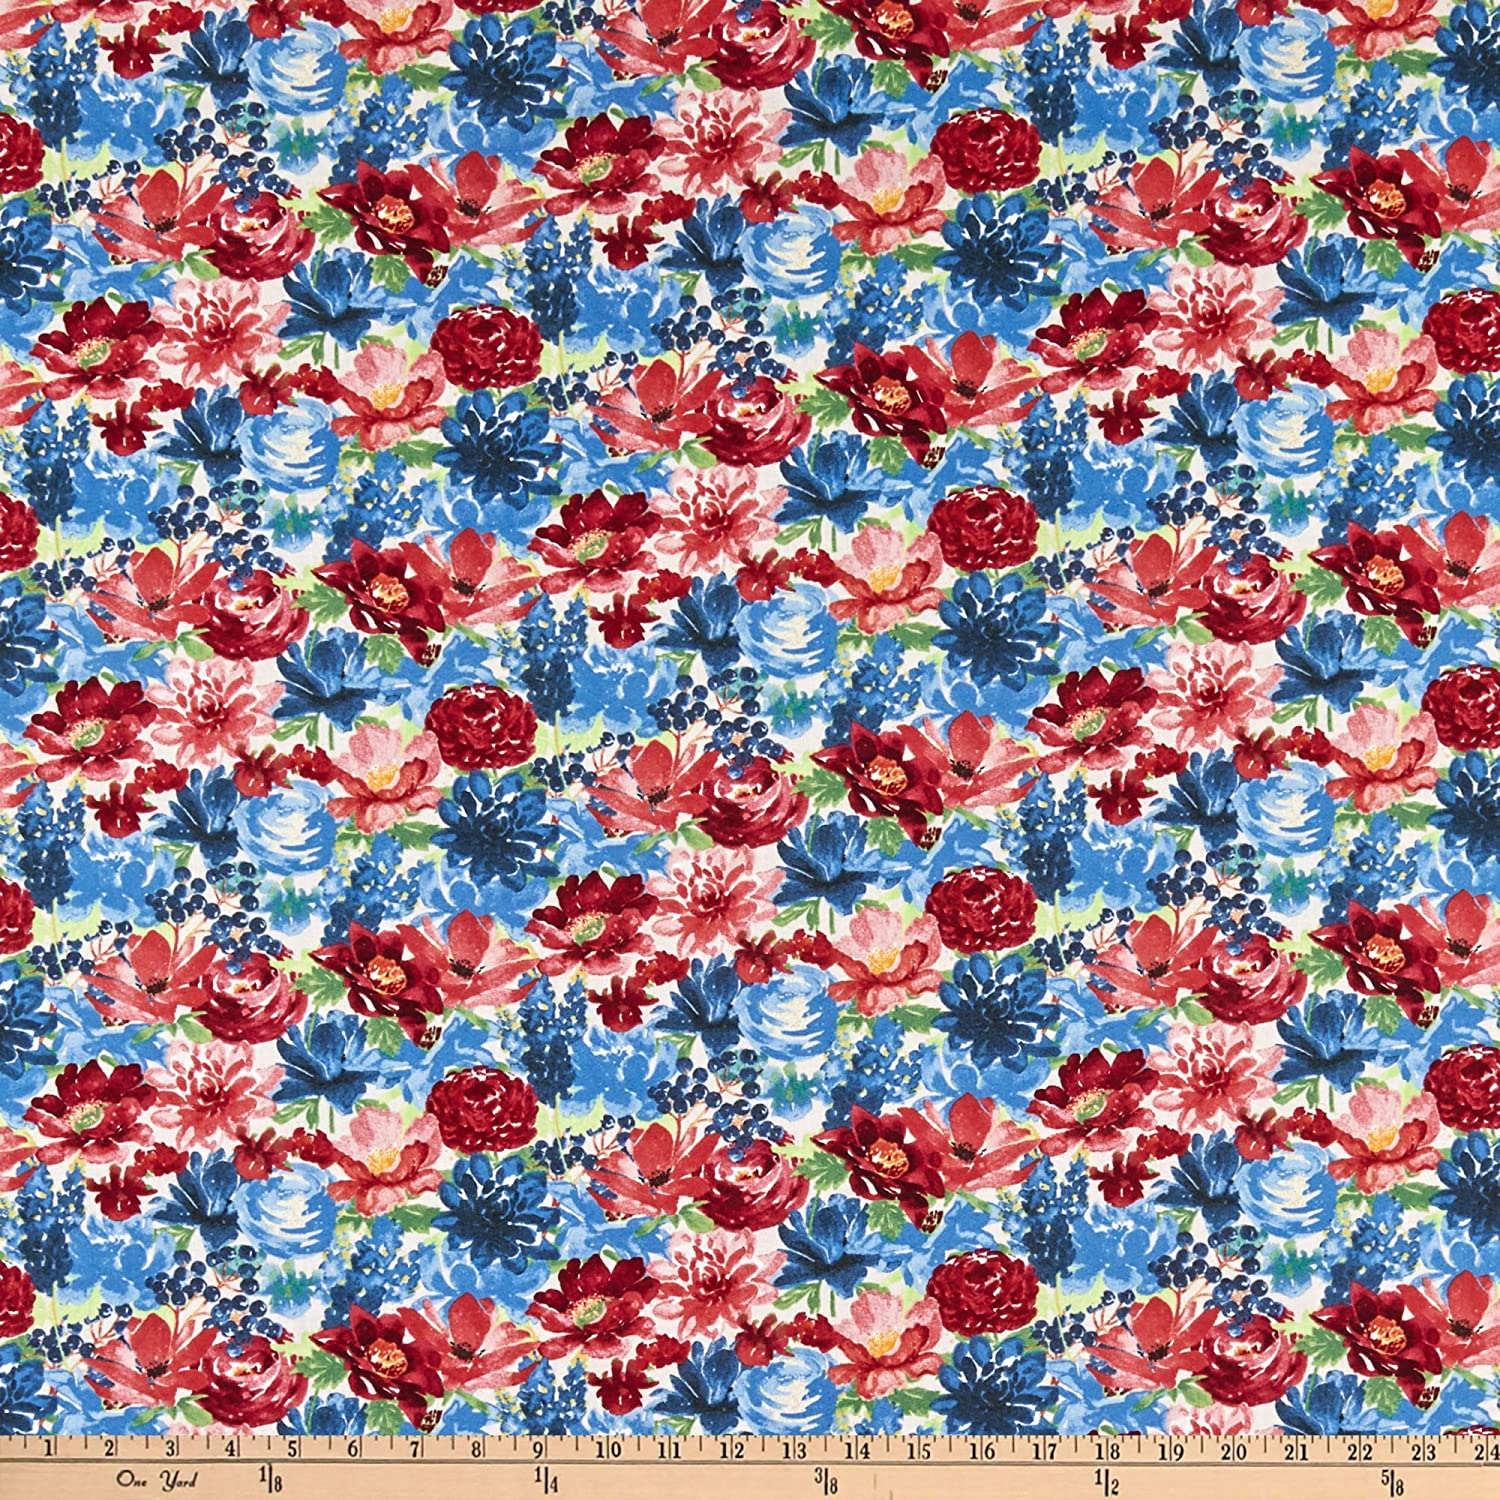 Wilmington Garden Charm Packed Floral Cream Quilt Fabric By The Yard